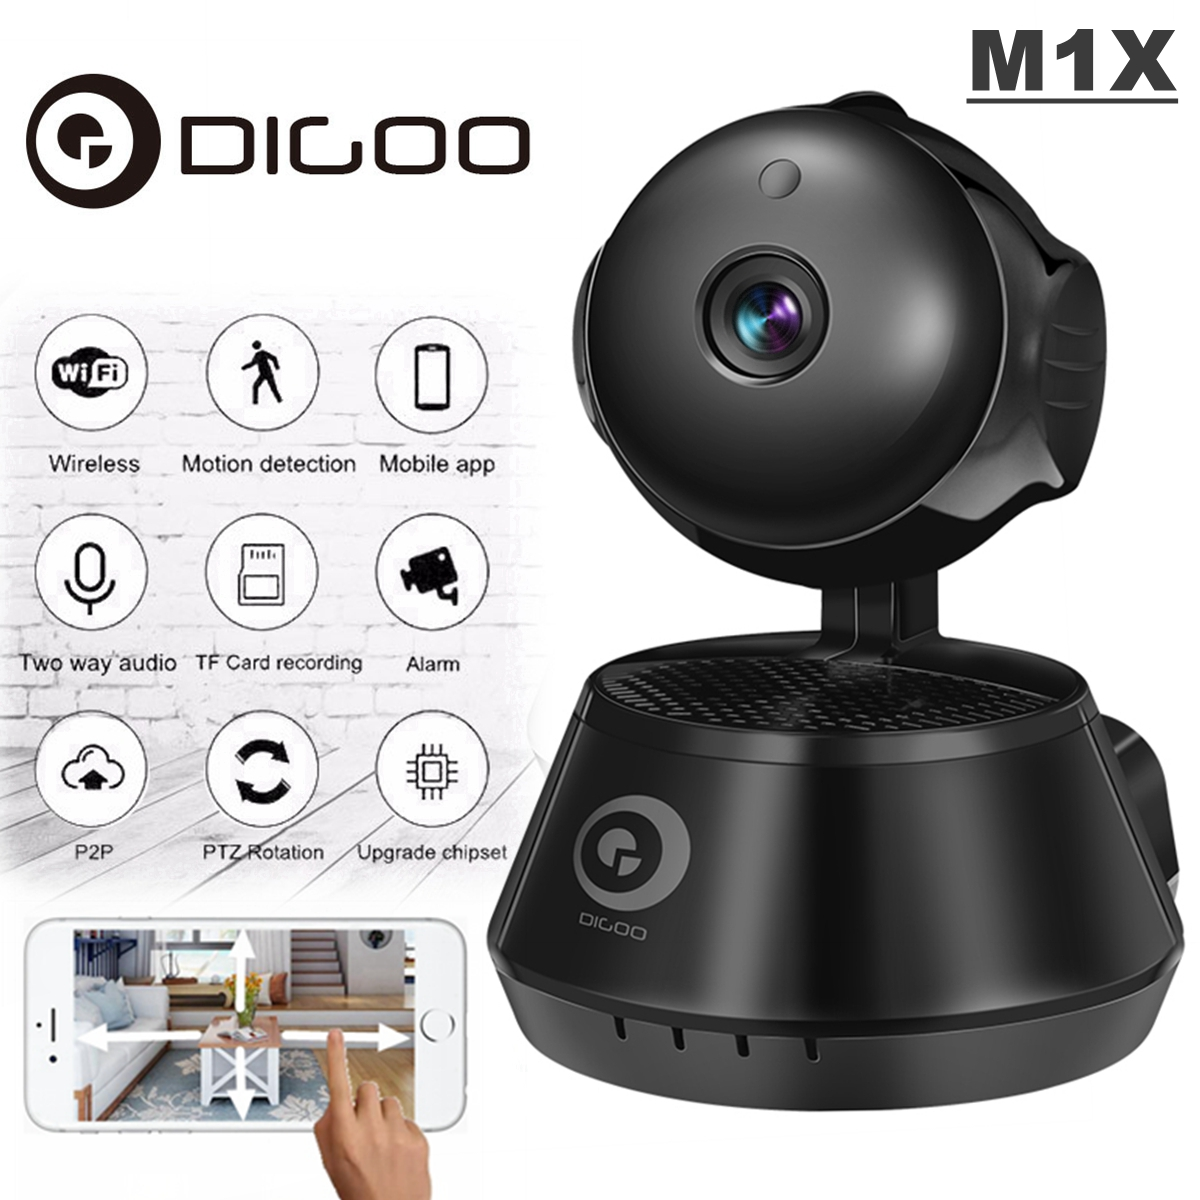 Digoo Smart Wireless WiFi Network IP Camera Baby spycamera Monitor CCTV with Night Vision IR Motion Detection &Two-Way APP Control & NVR Video Recorder for Home Security